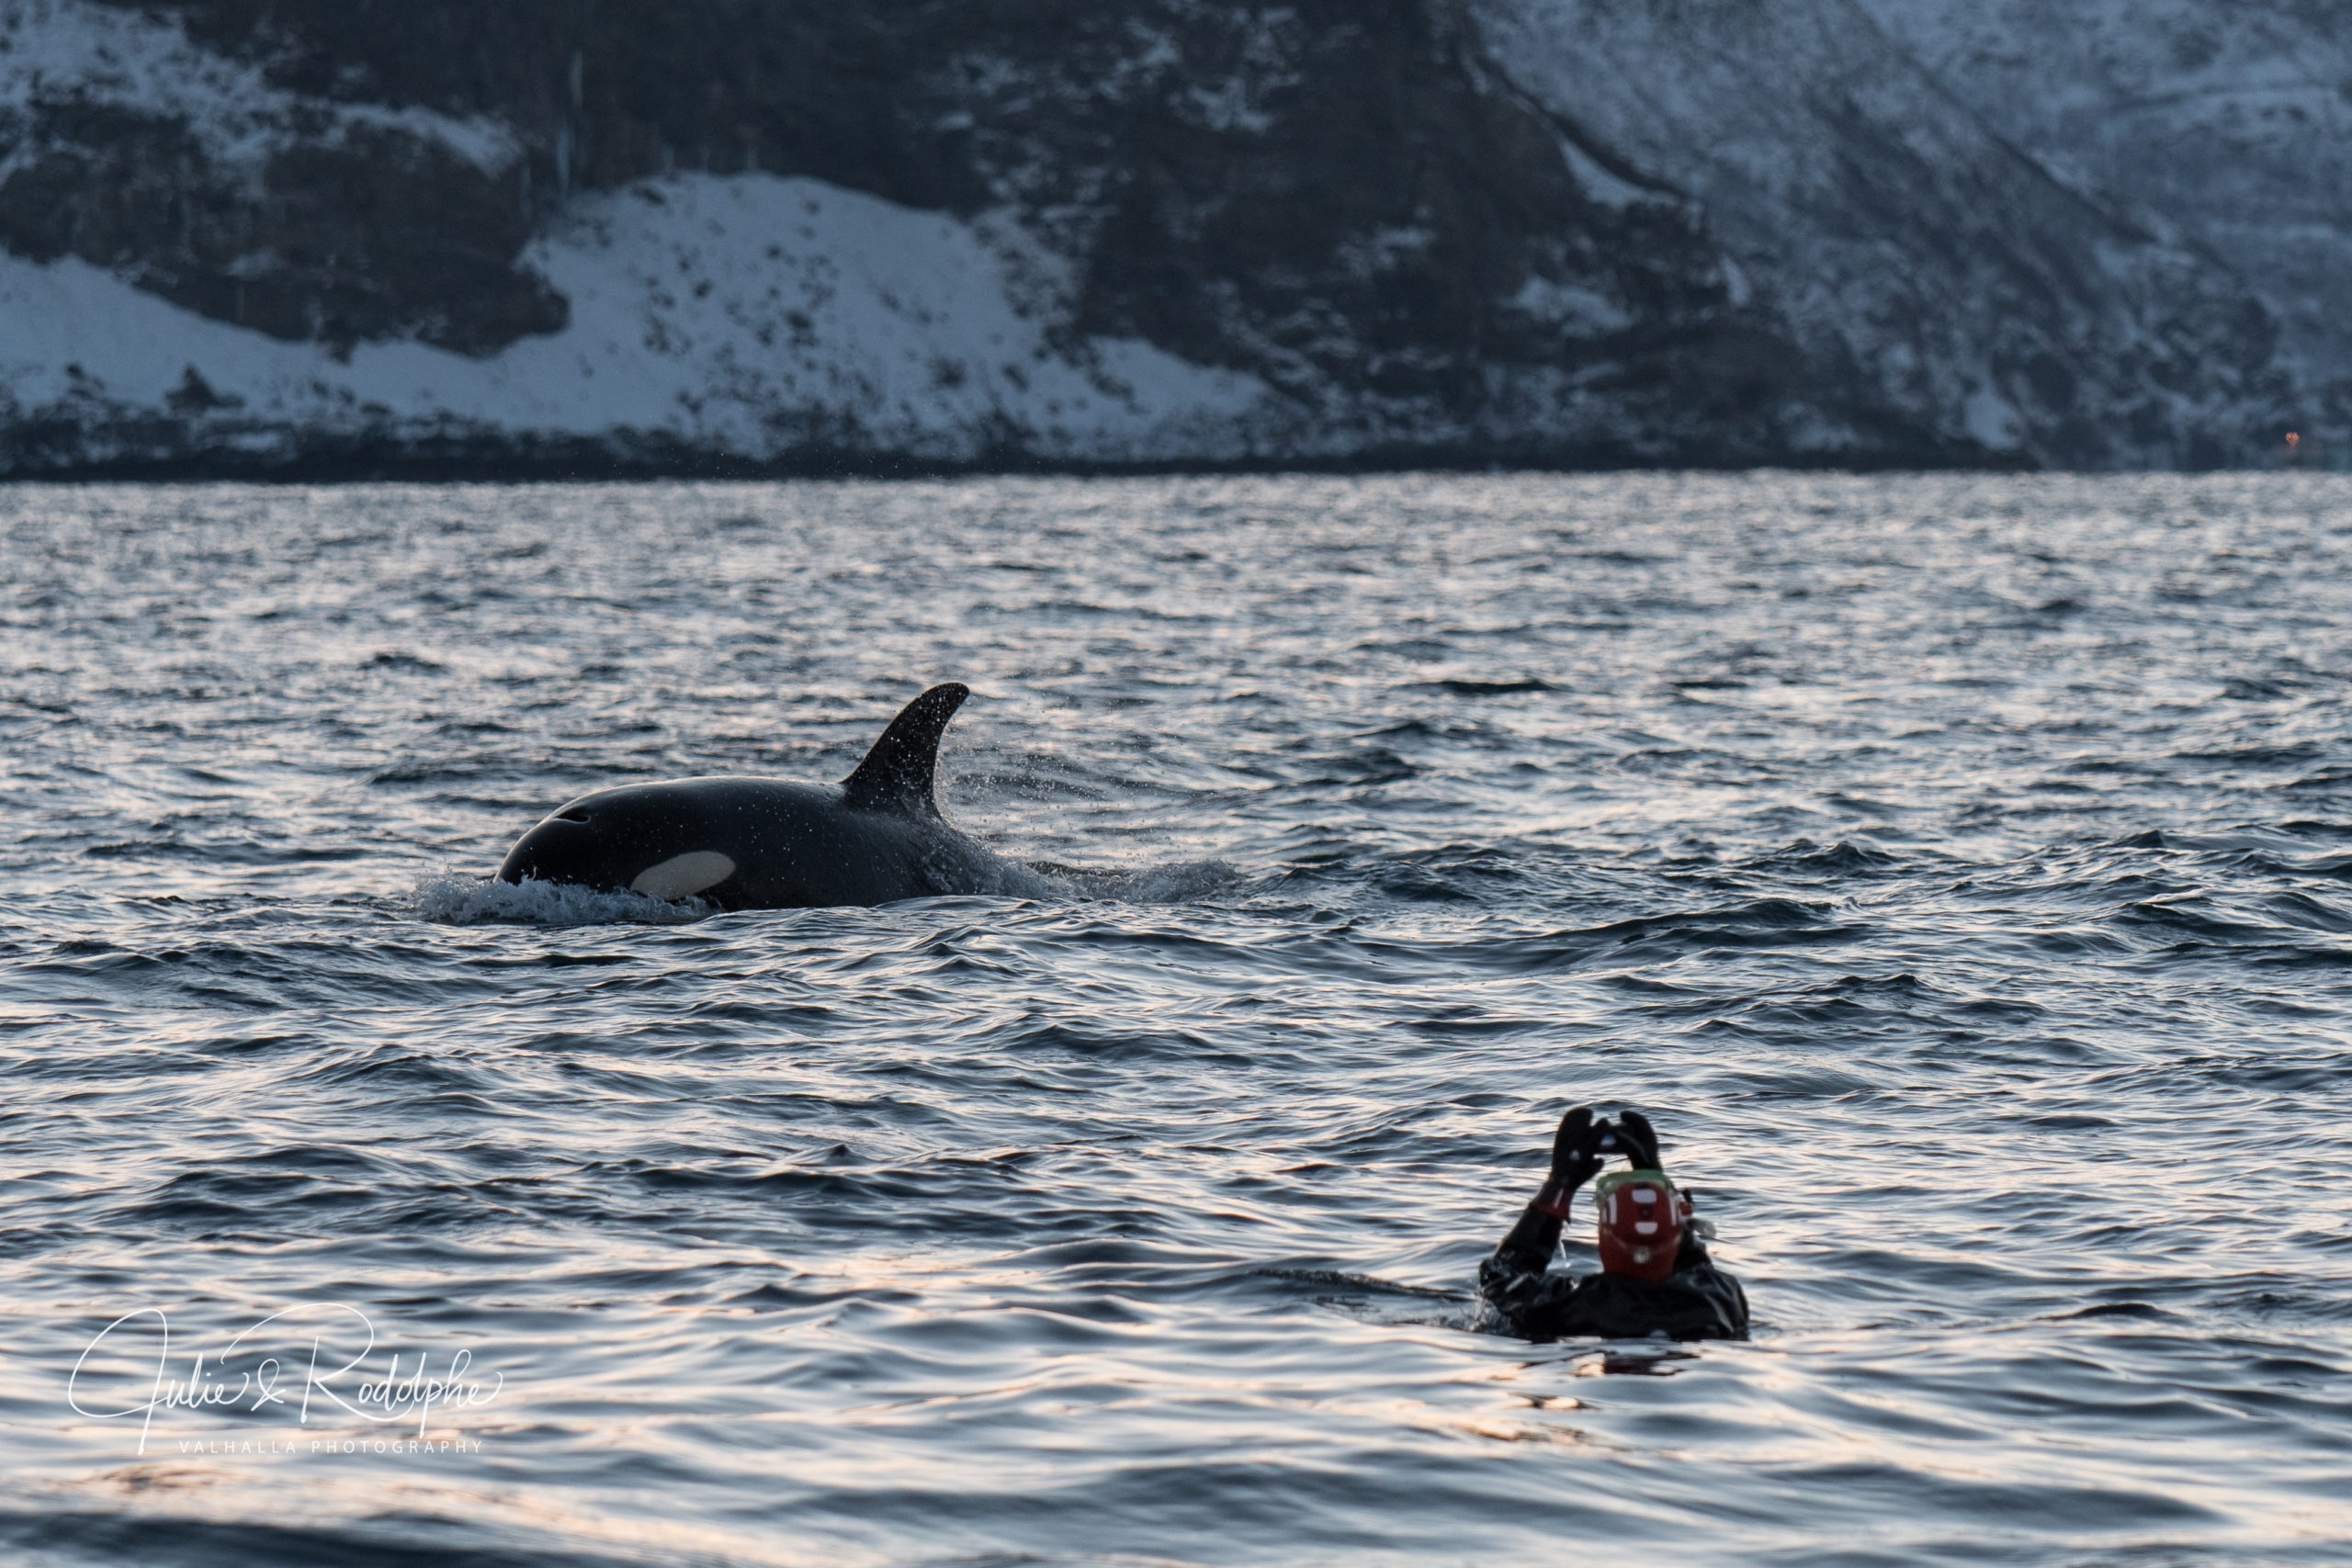 diver in the water making photo of orca